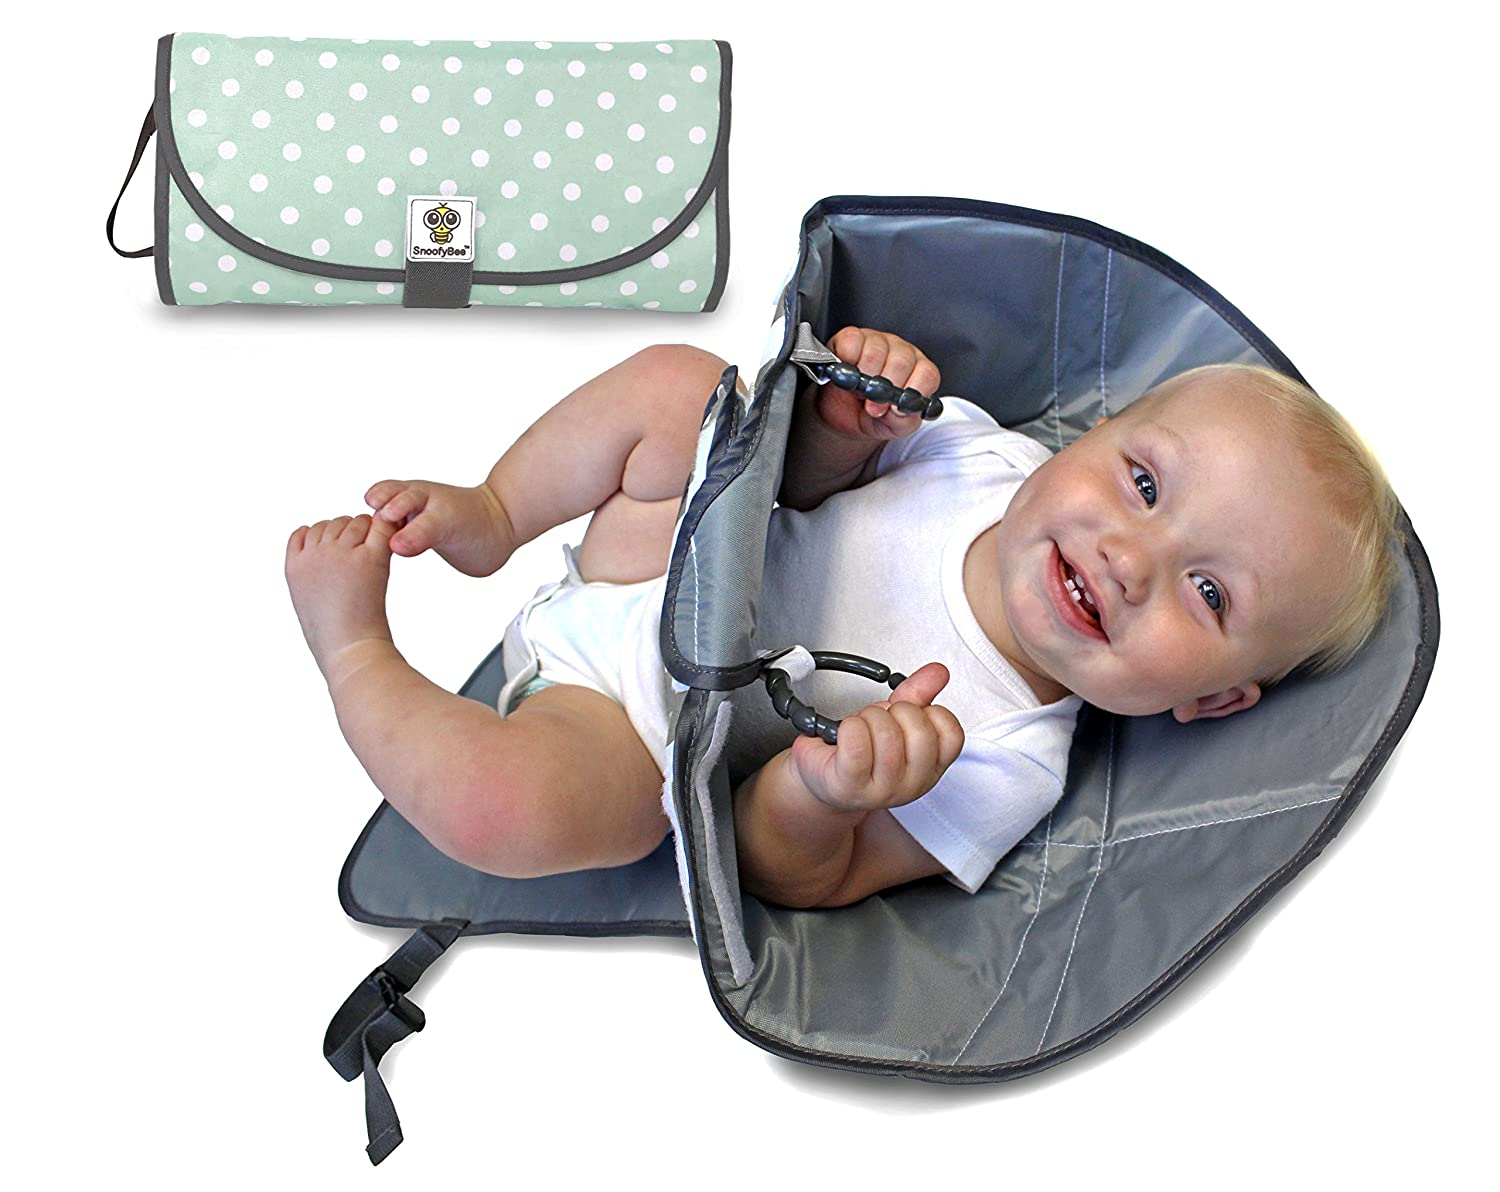 SnoofyBee half Portable Clean Hands Changing Clutc Diaper 3-in-1 New products world's highest quality popular Pad.